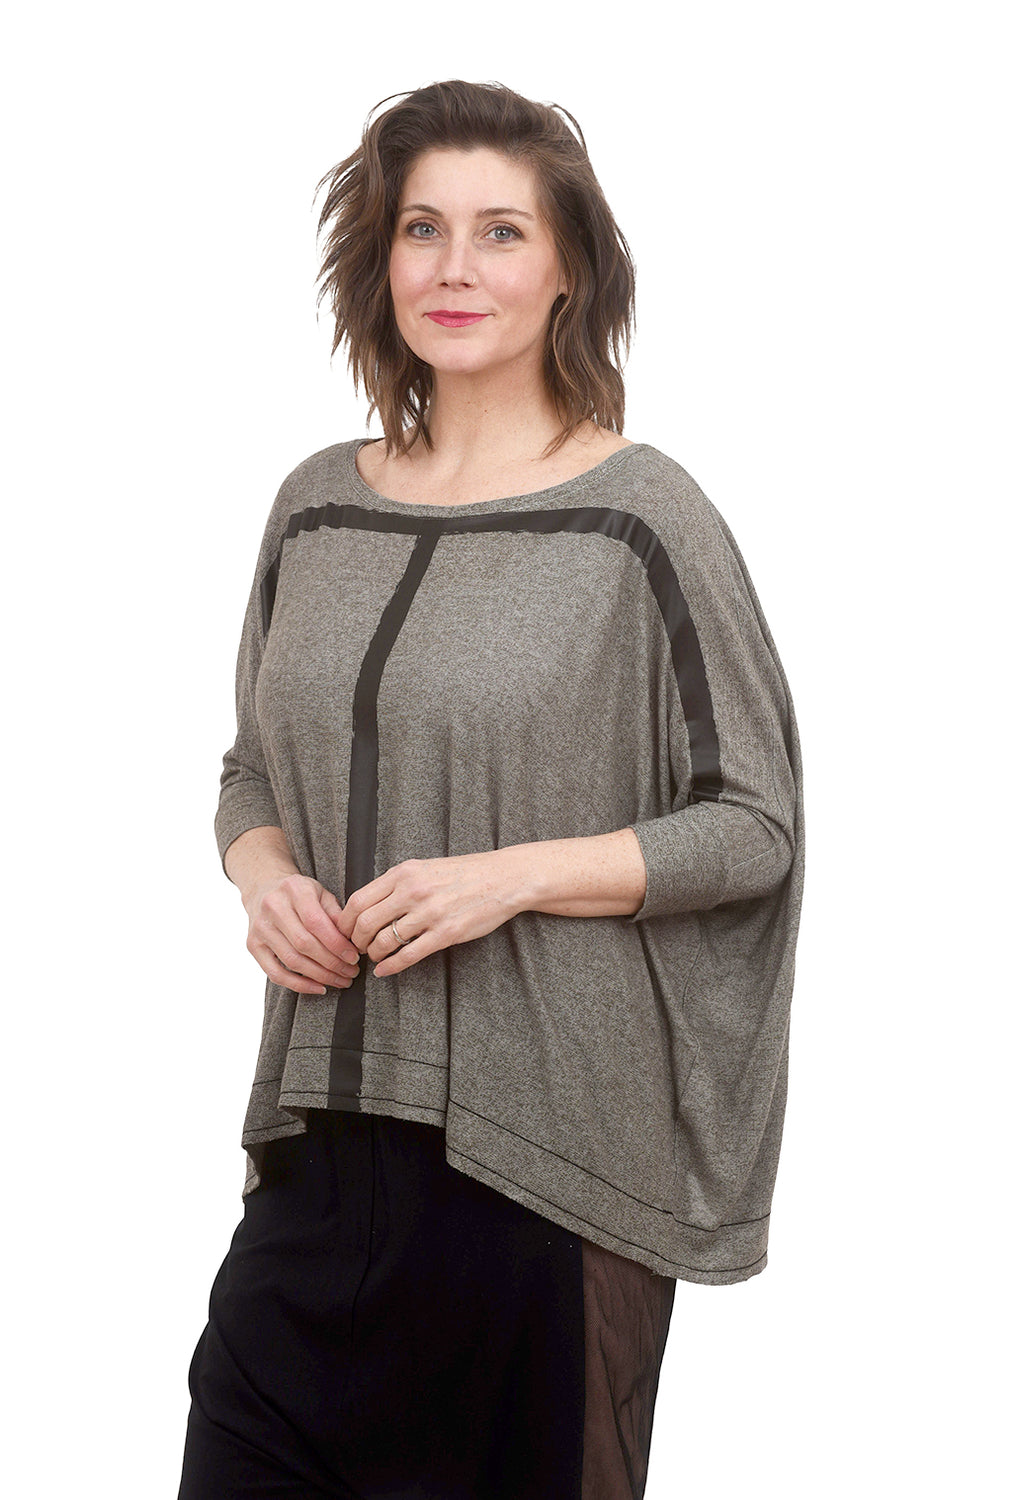 Ozai n Ku Marjoram Knit Top, Dark Gray